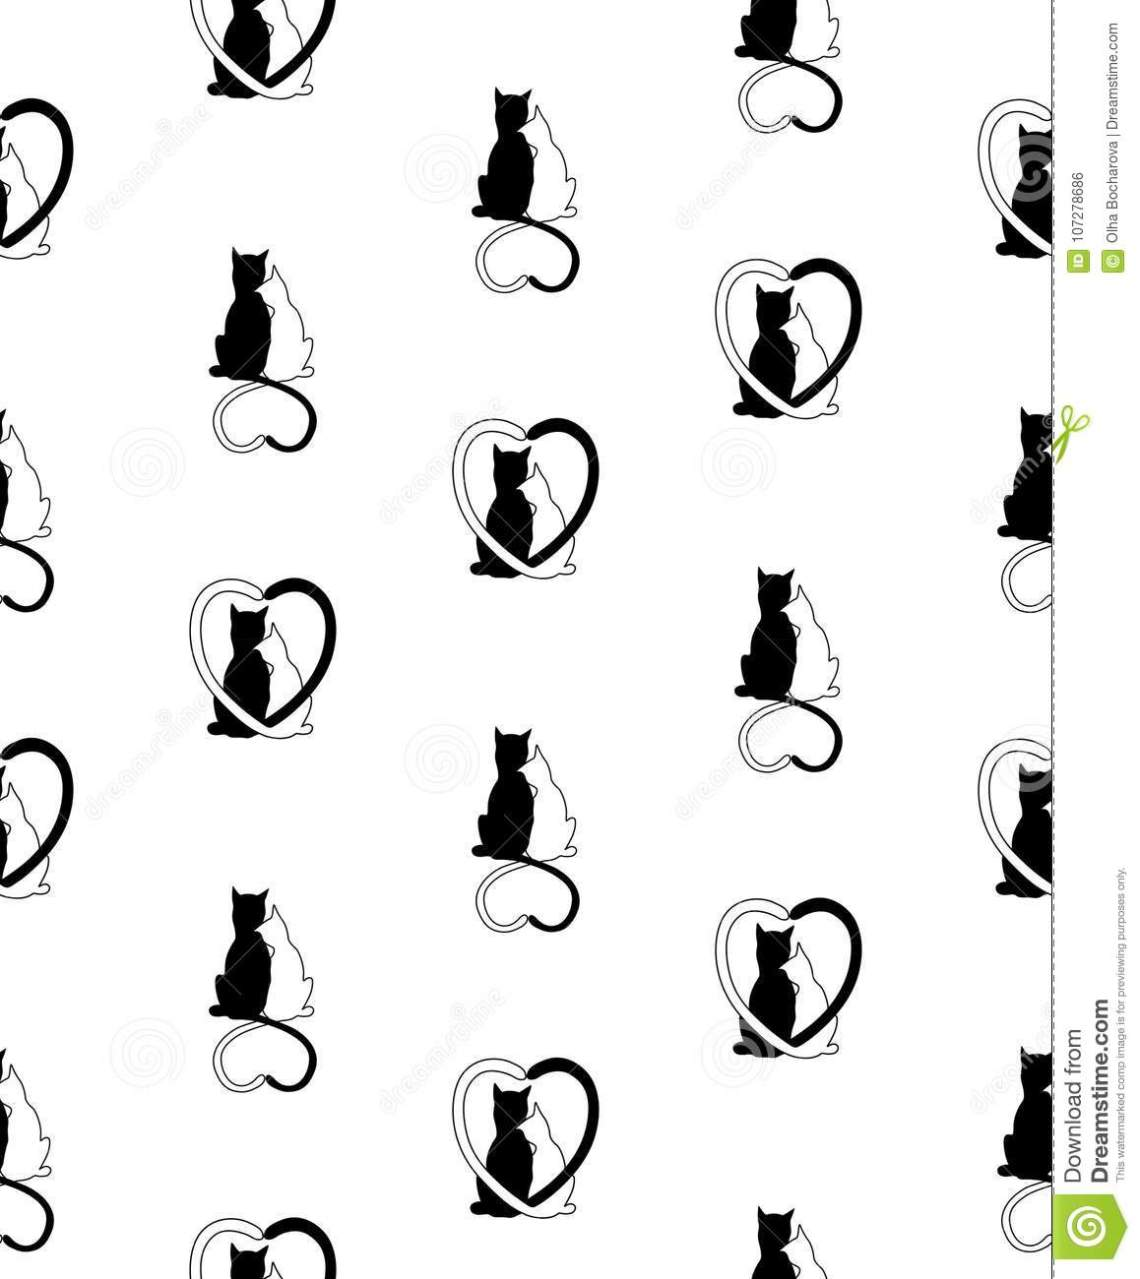 Download Vector Seamless Pattern From Silhouette Of Cat Couple In ...